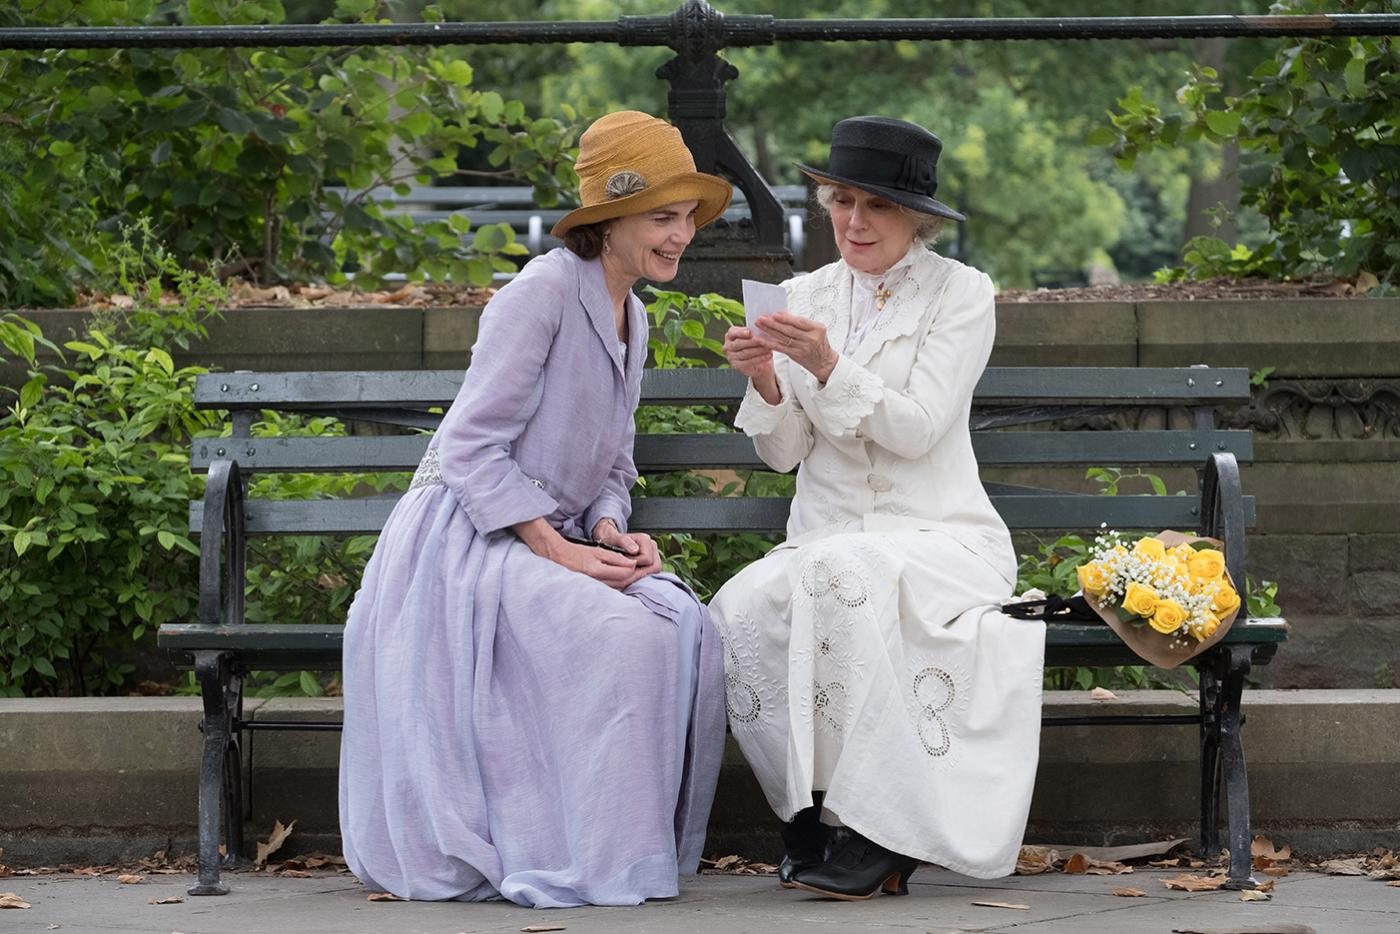 Elizabeth McGovern and Blythe Danner in The Chaperone. Photo: Barry Wetcher/PBS Distribution